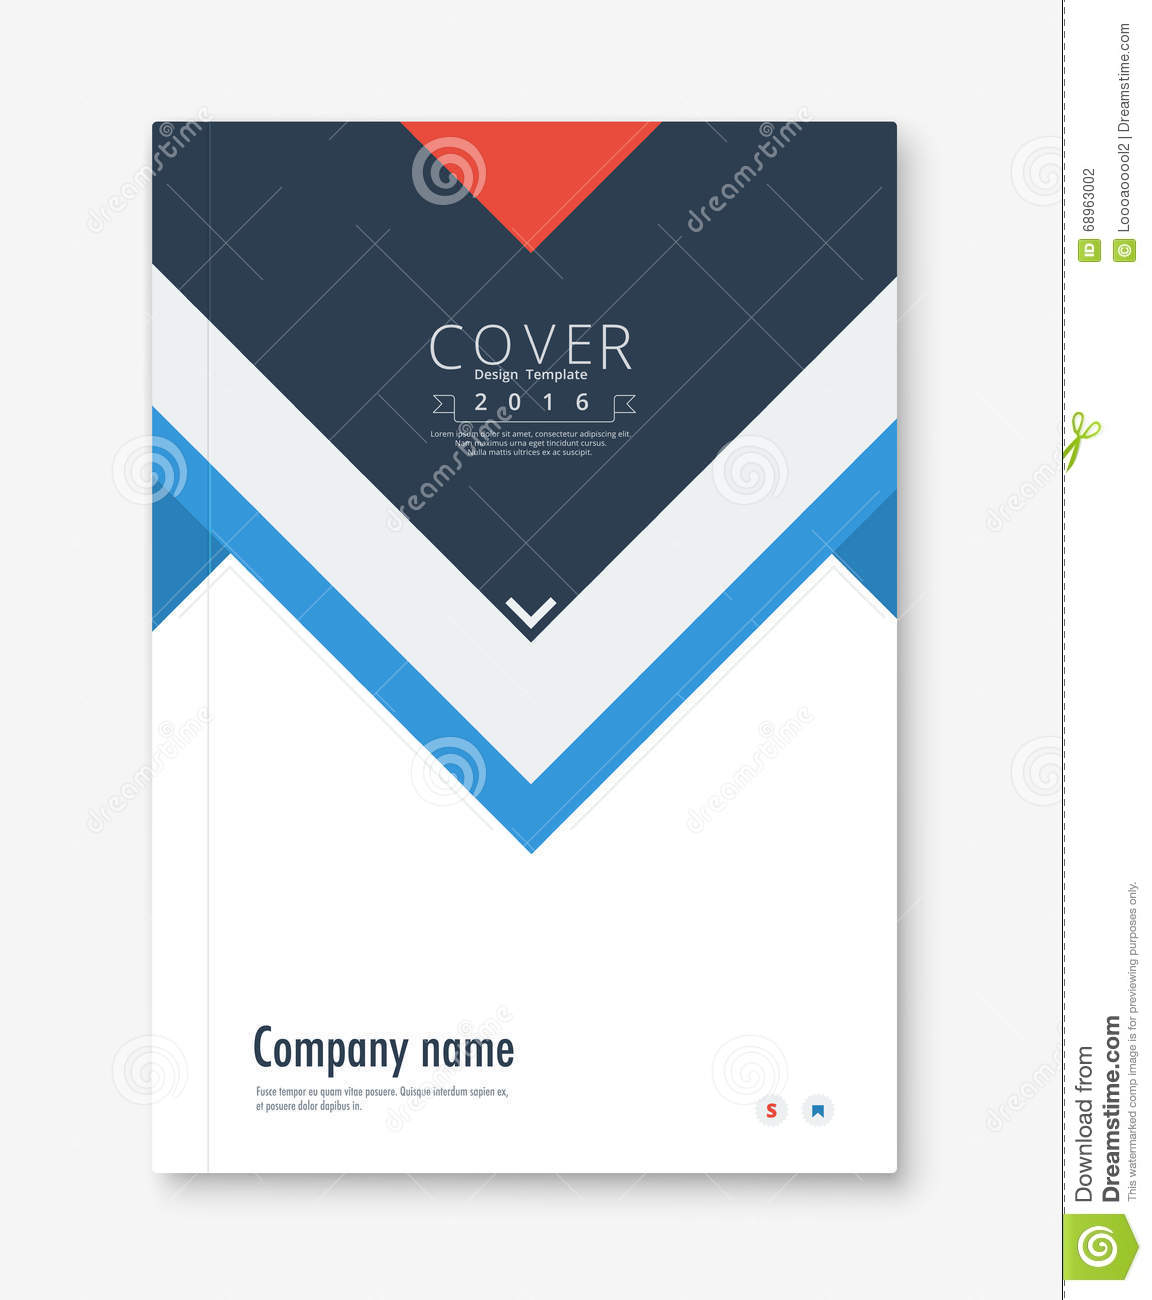 Annual Report Cover Design Book Brochure Template With Sample – Company Annual Report Sample